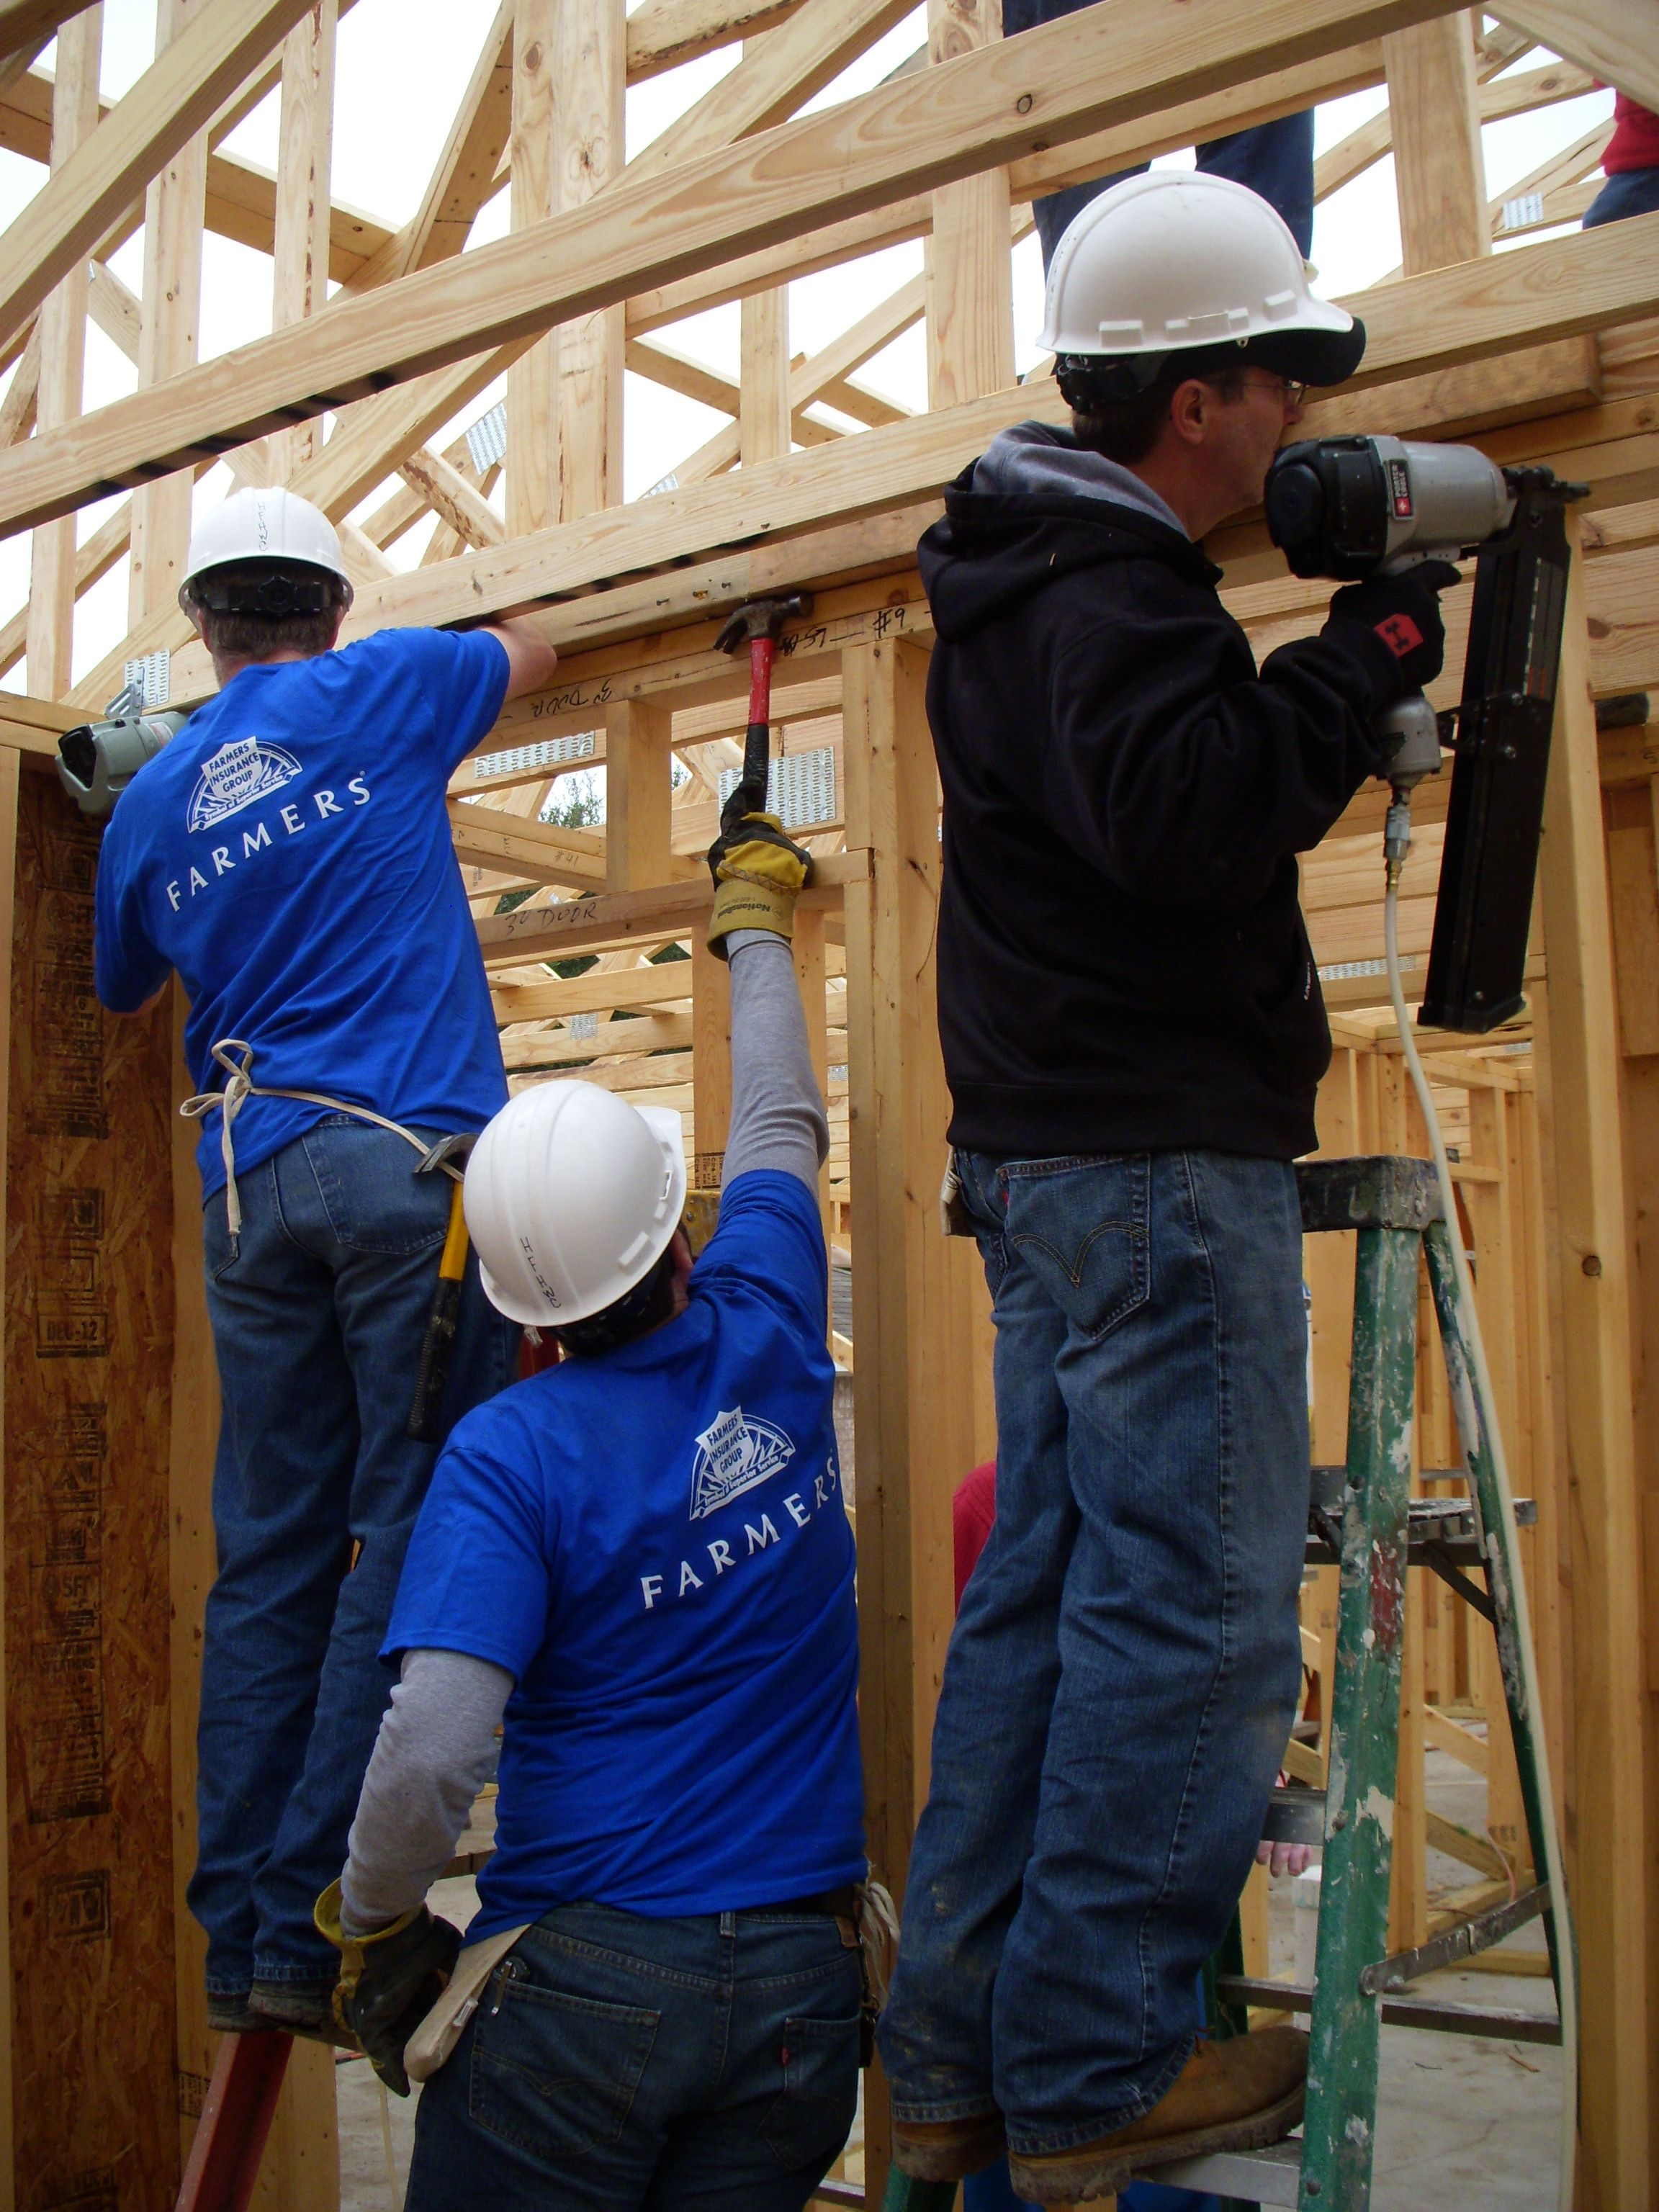 Farmers insurance volunteers because we are more than